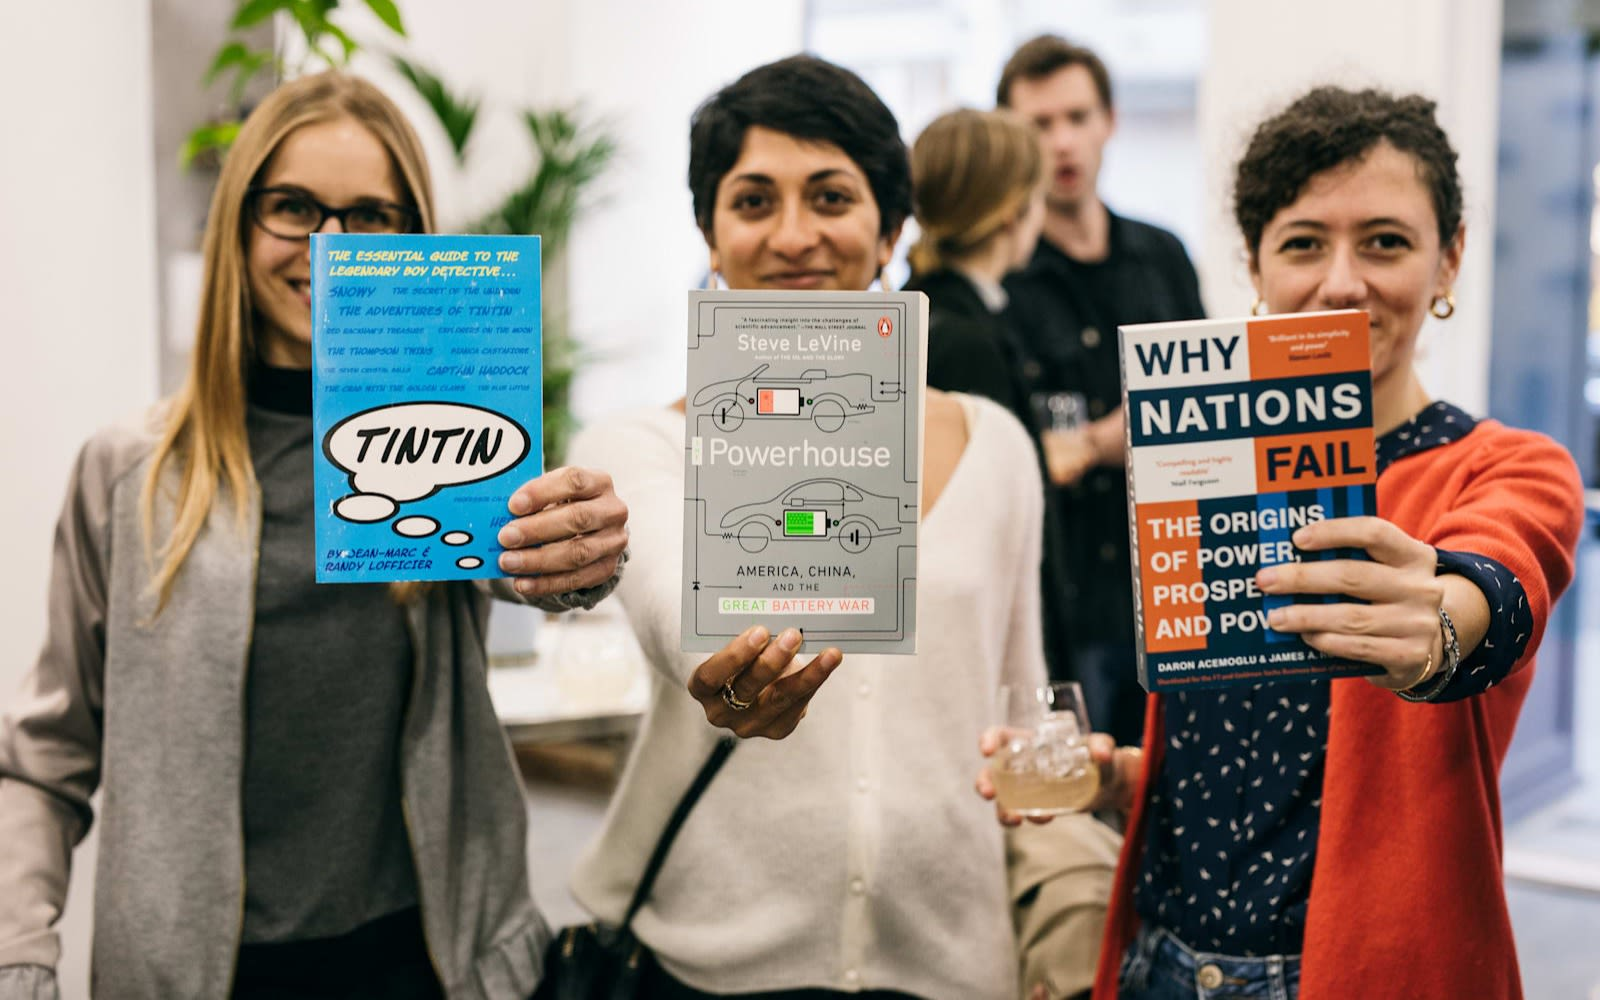 Rebel Book Club members. Three women stand shoulder to shoulder holding a book towards the camera. The book titles are TinTin, Powerhouse and Why Nations Fail